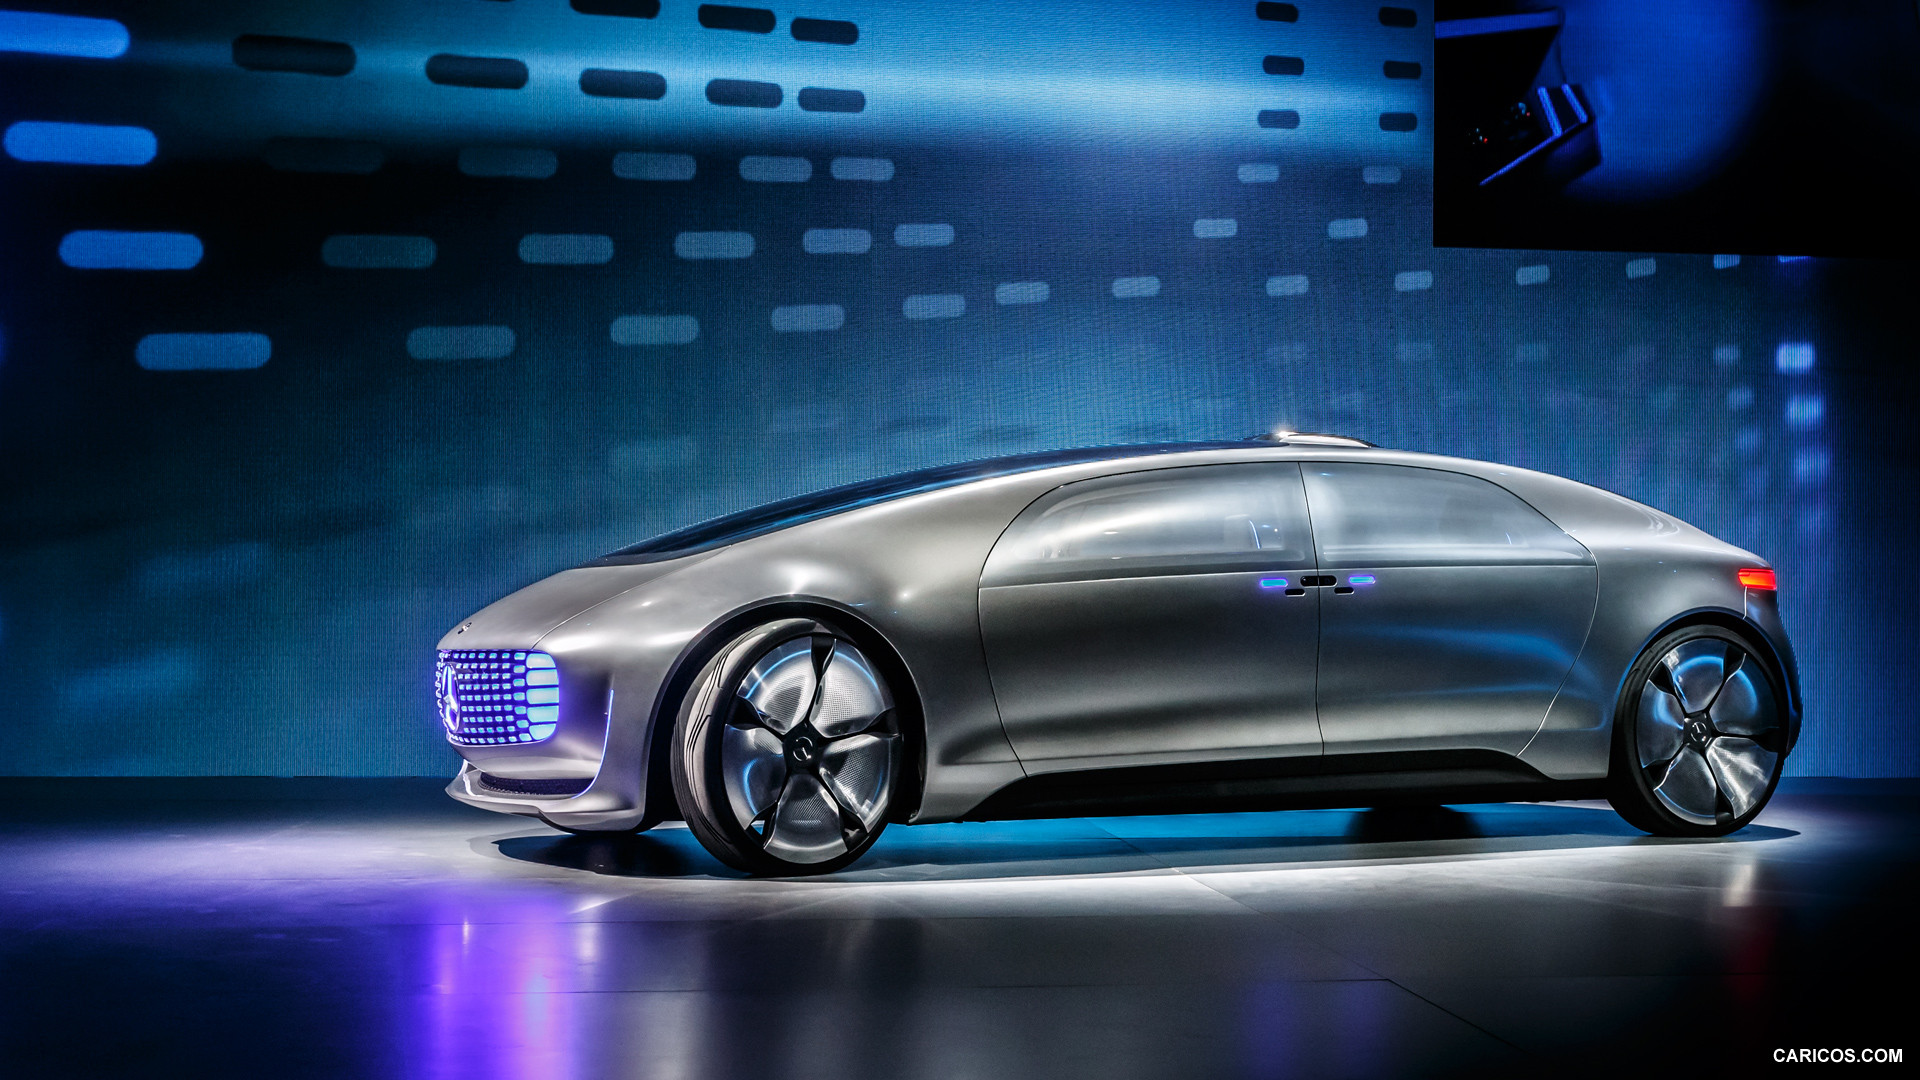 Mercedes benz f 015 luxury photos photogallery with 15 for Mercedes benz f